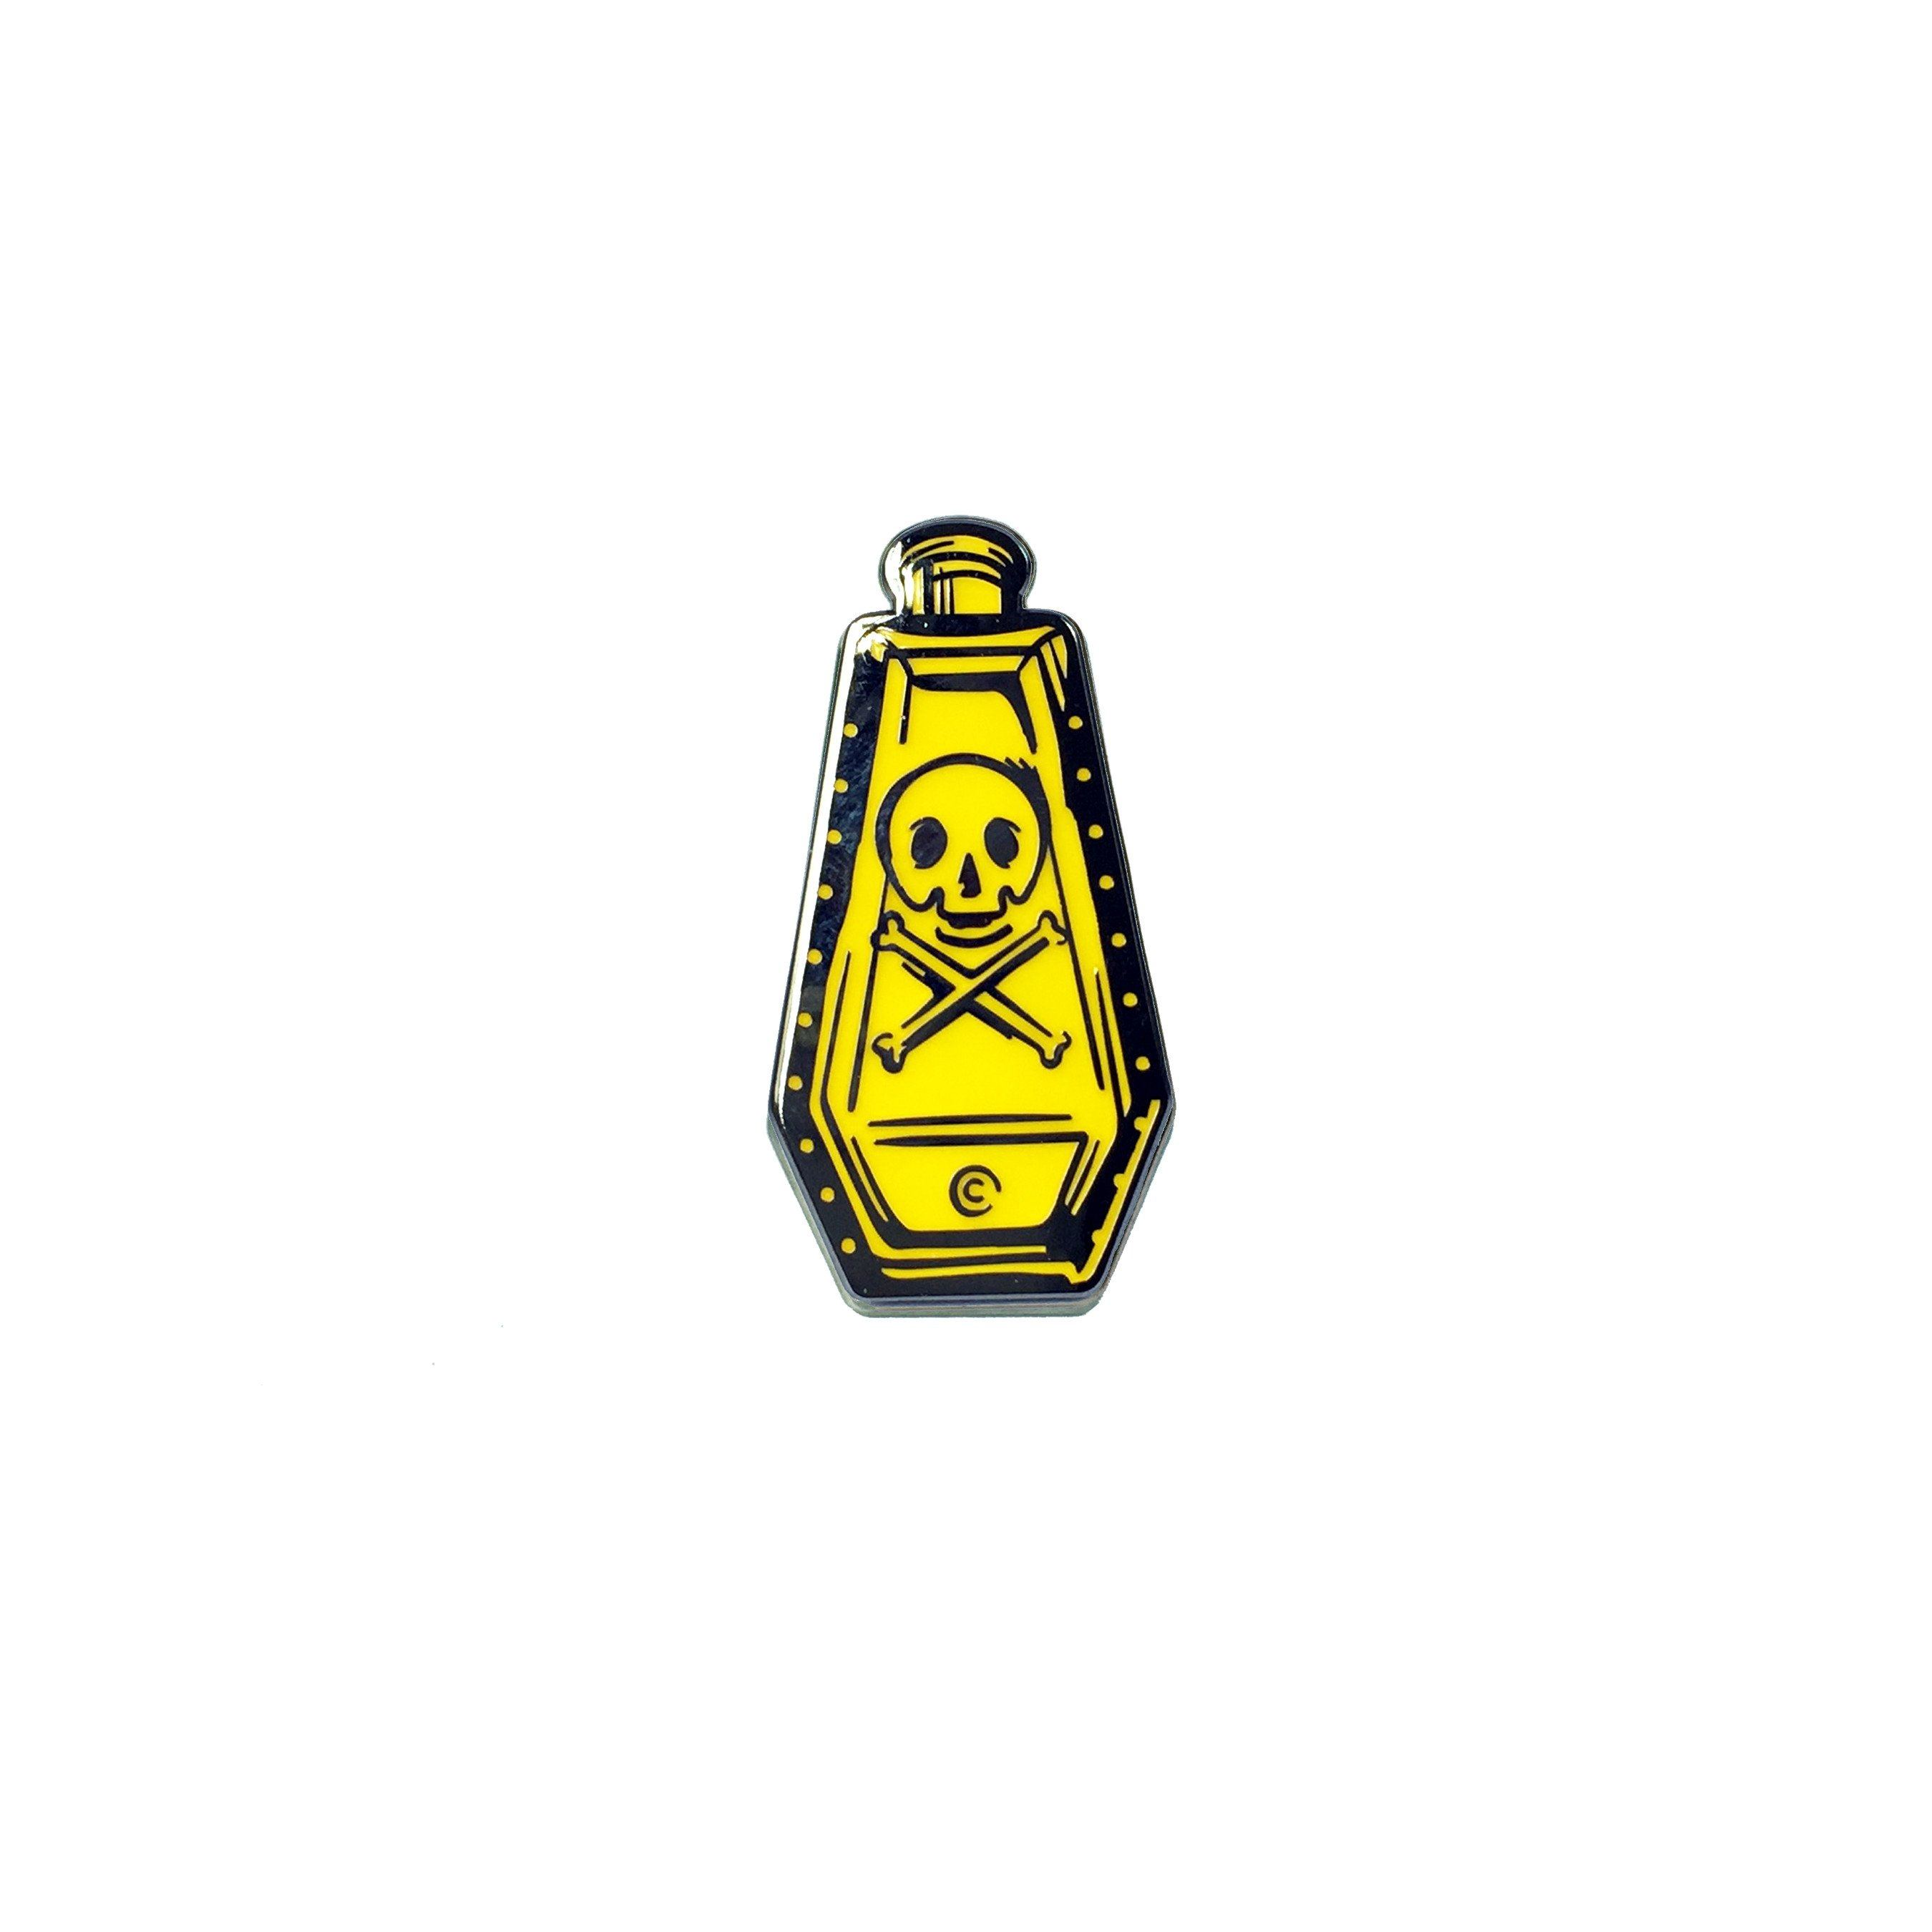 Replica Poison Bottle Enamel Pin Bundle - Creepy Co.